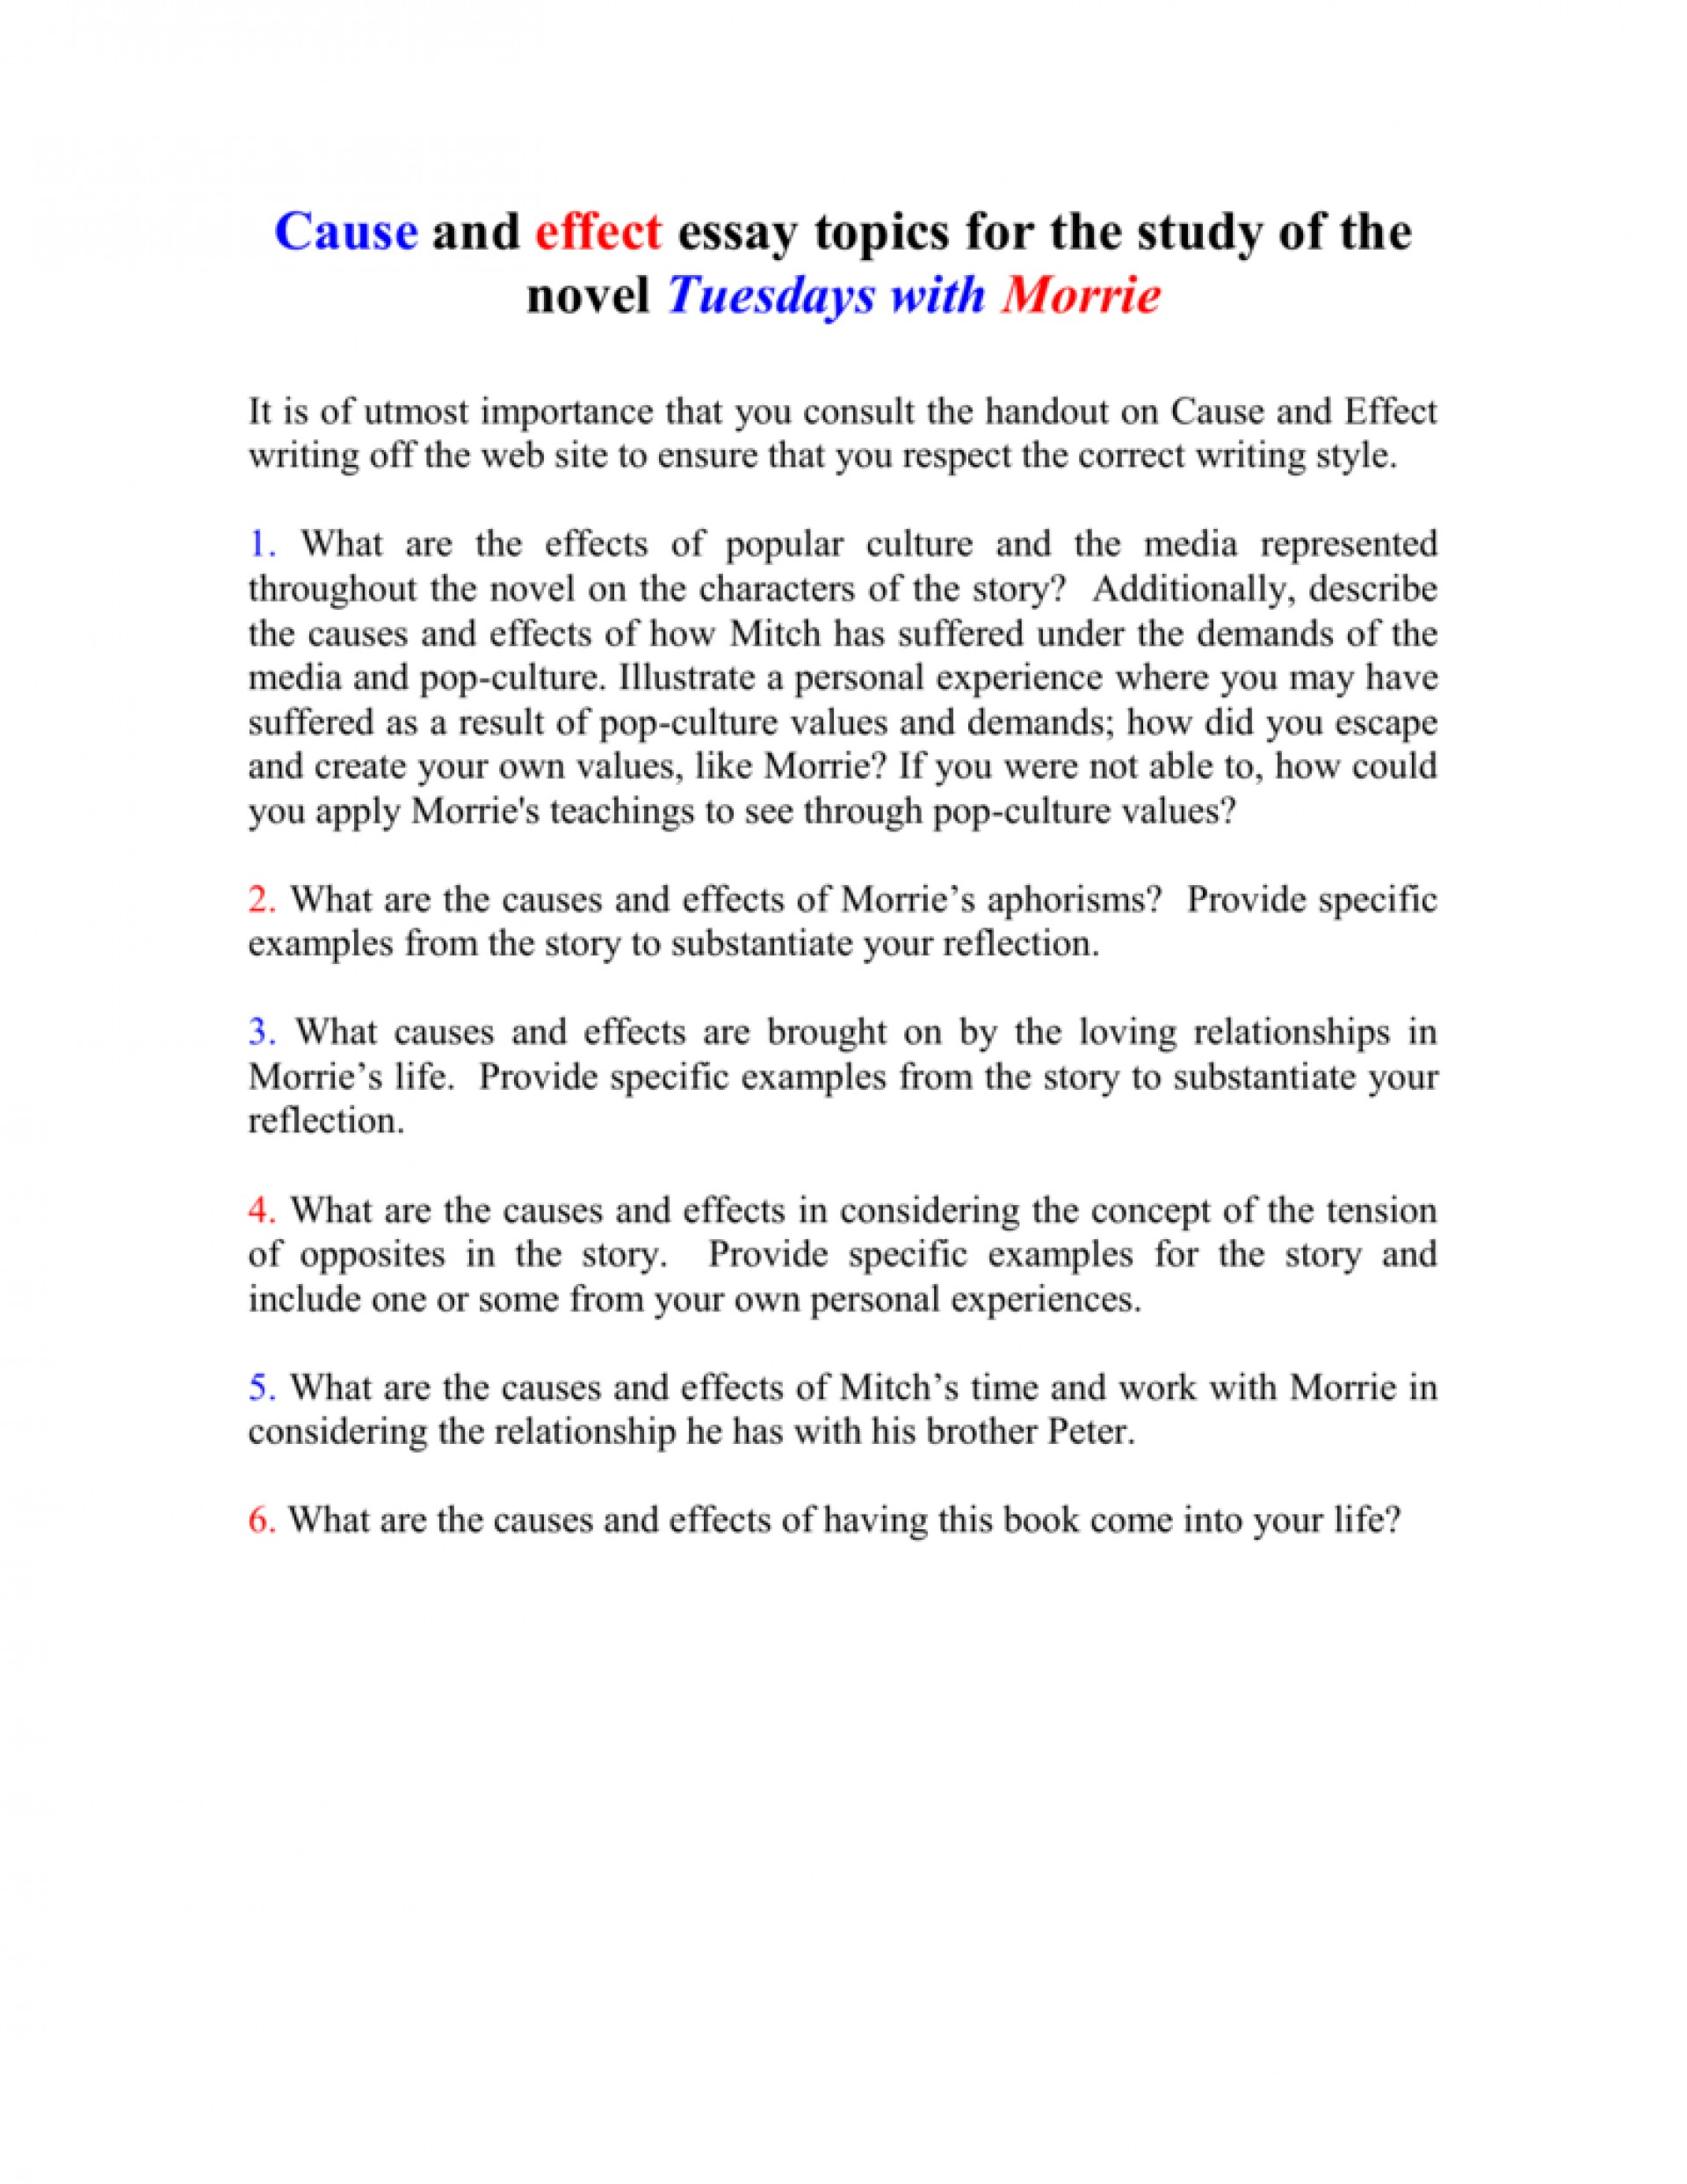 013 Essay Example 008010712 1 Tuesdays With Striking Morrie Topics Writing Prompts Paper 1920